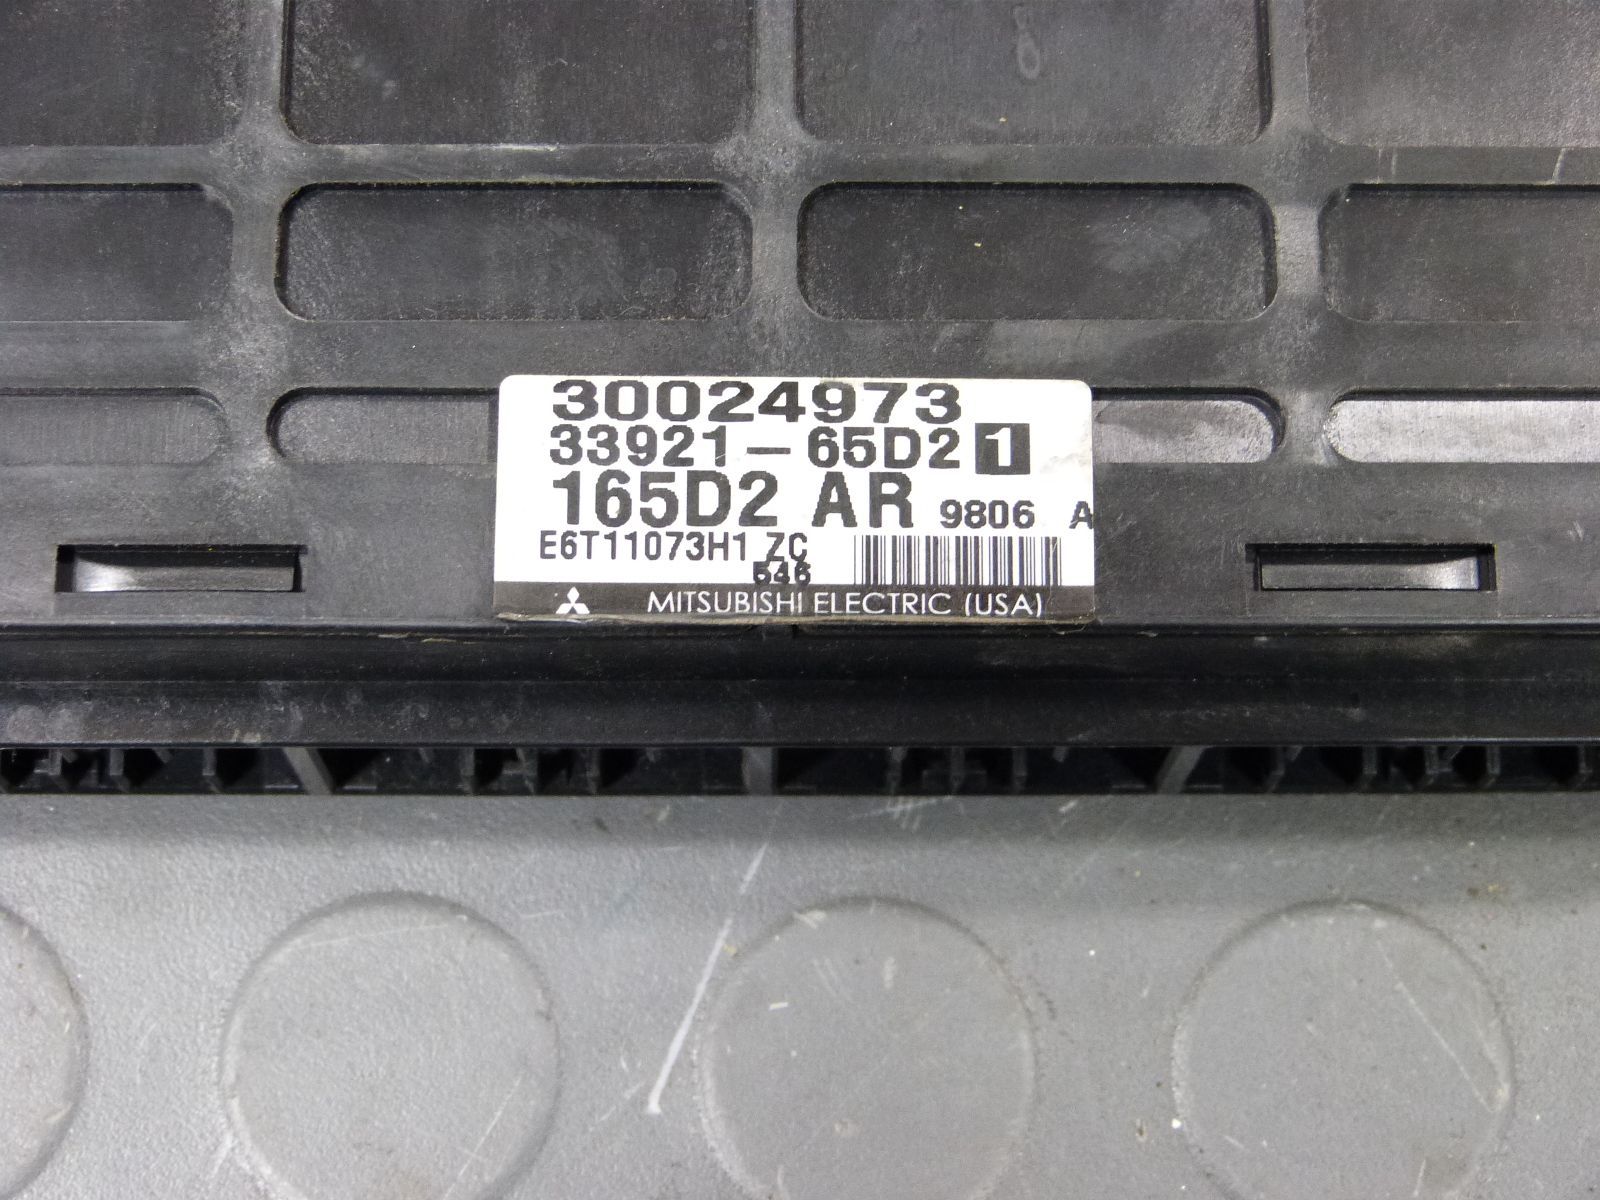 99 Chevy Tracker Suzuki Vitara 2 0L MT ECU Engine Computer 30024973